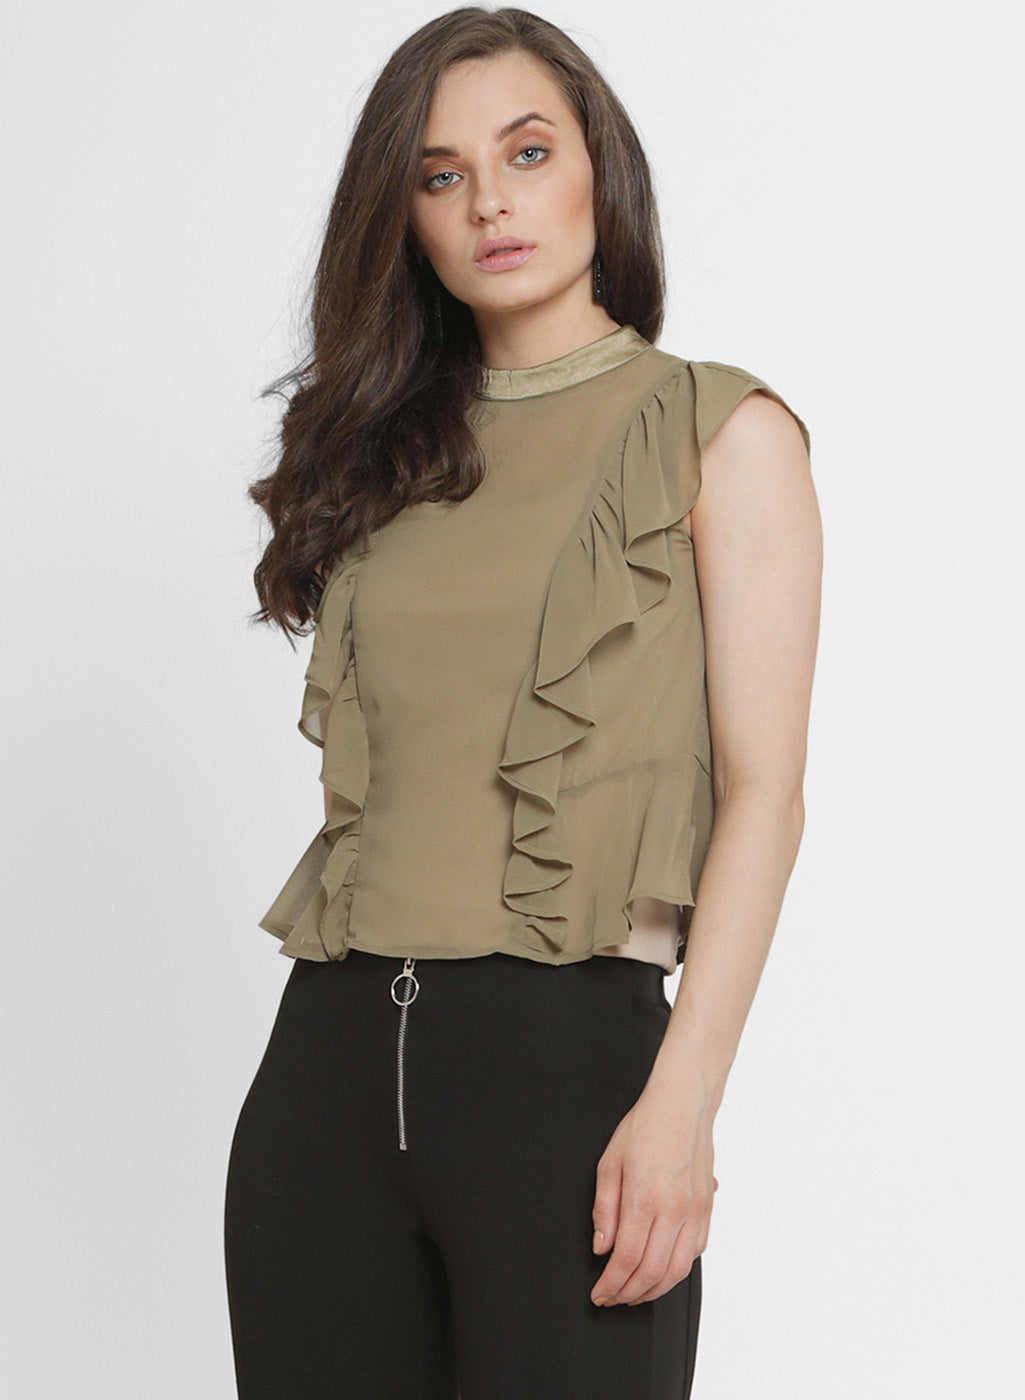 Moselle Princes Ruffle Top